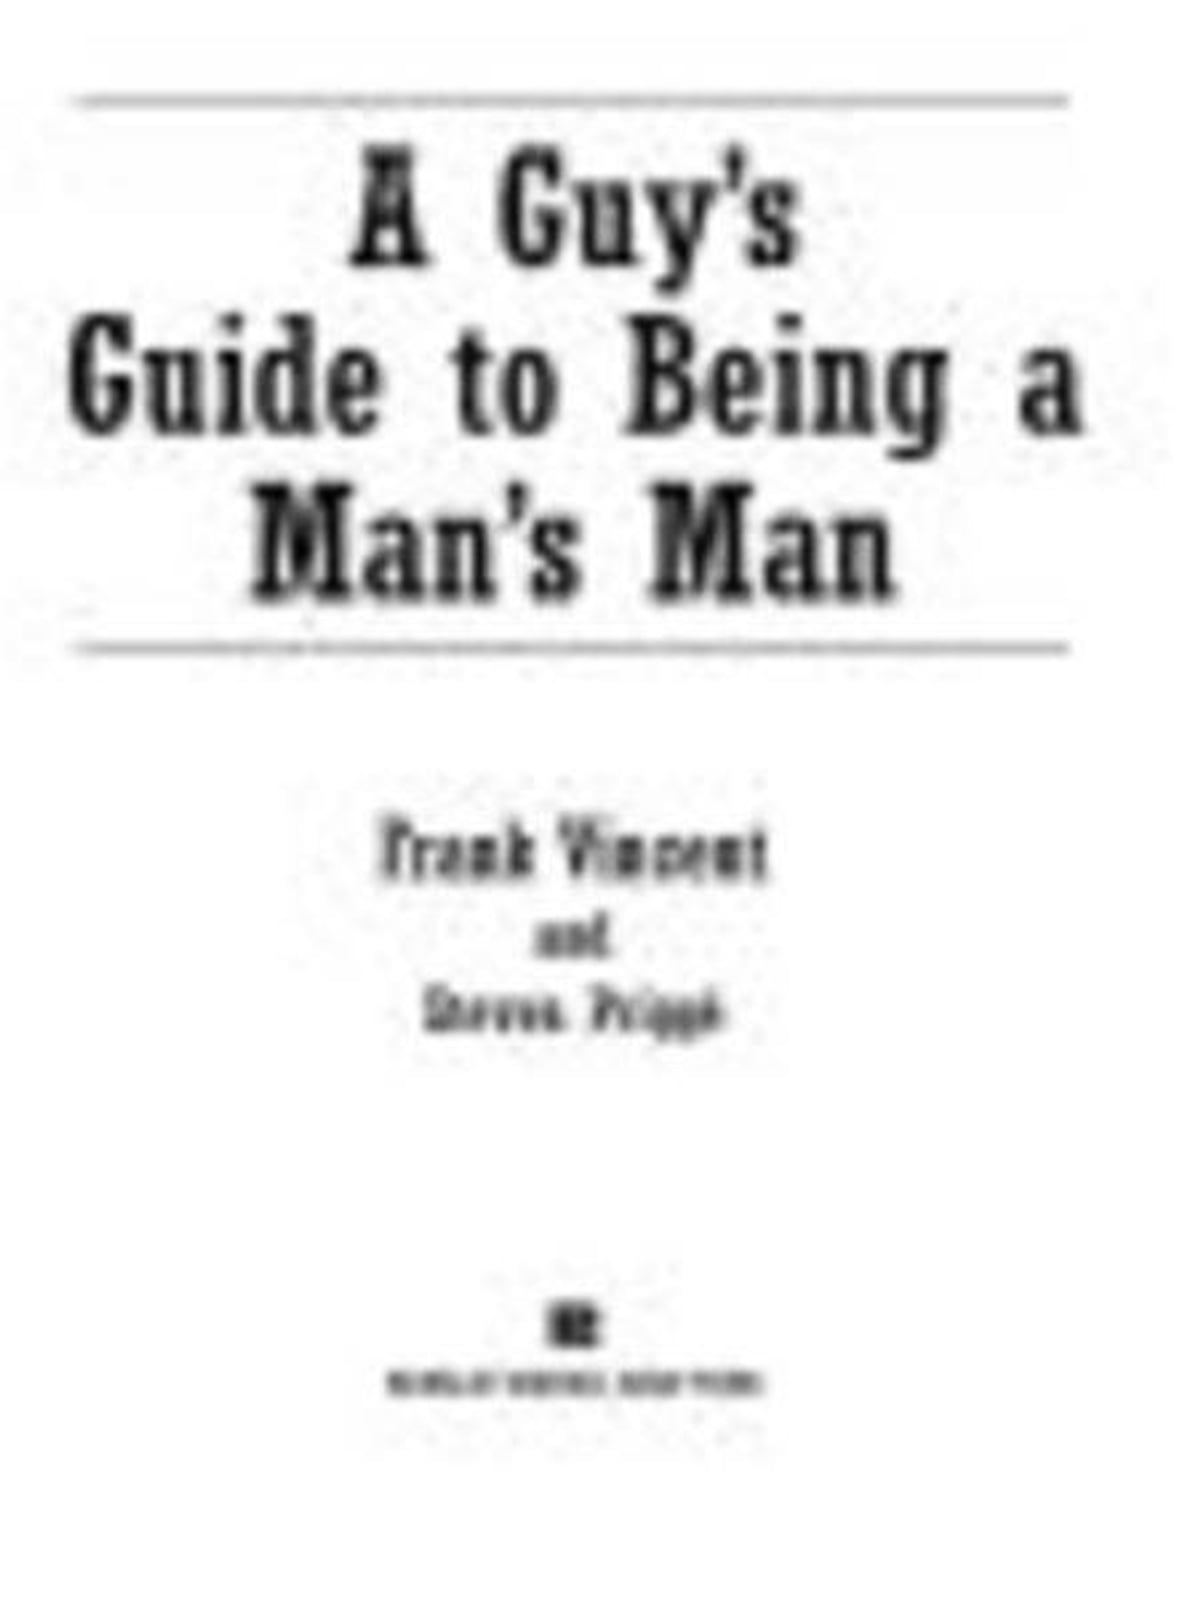 A Guys Guide to Being a Mans Man